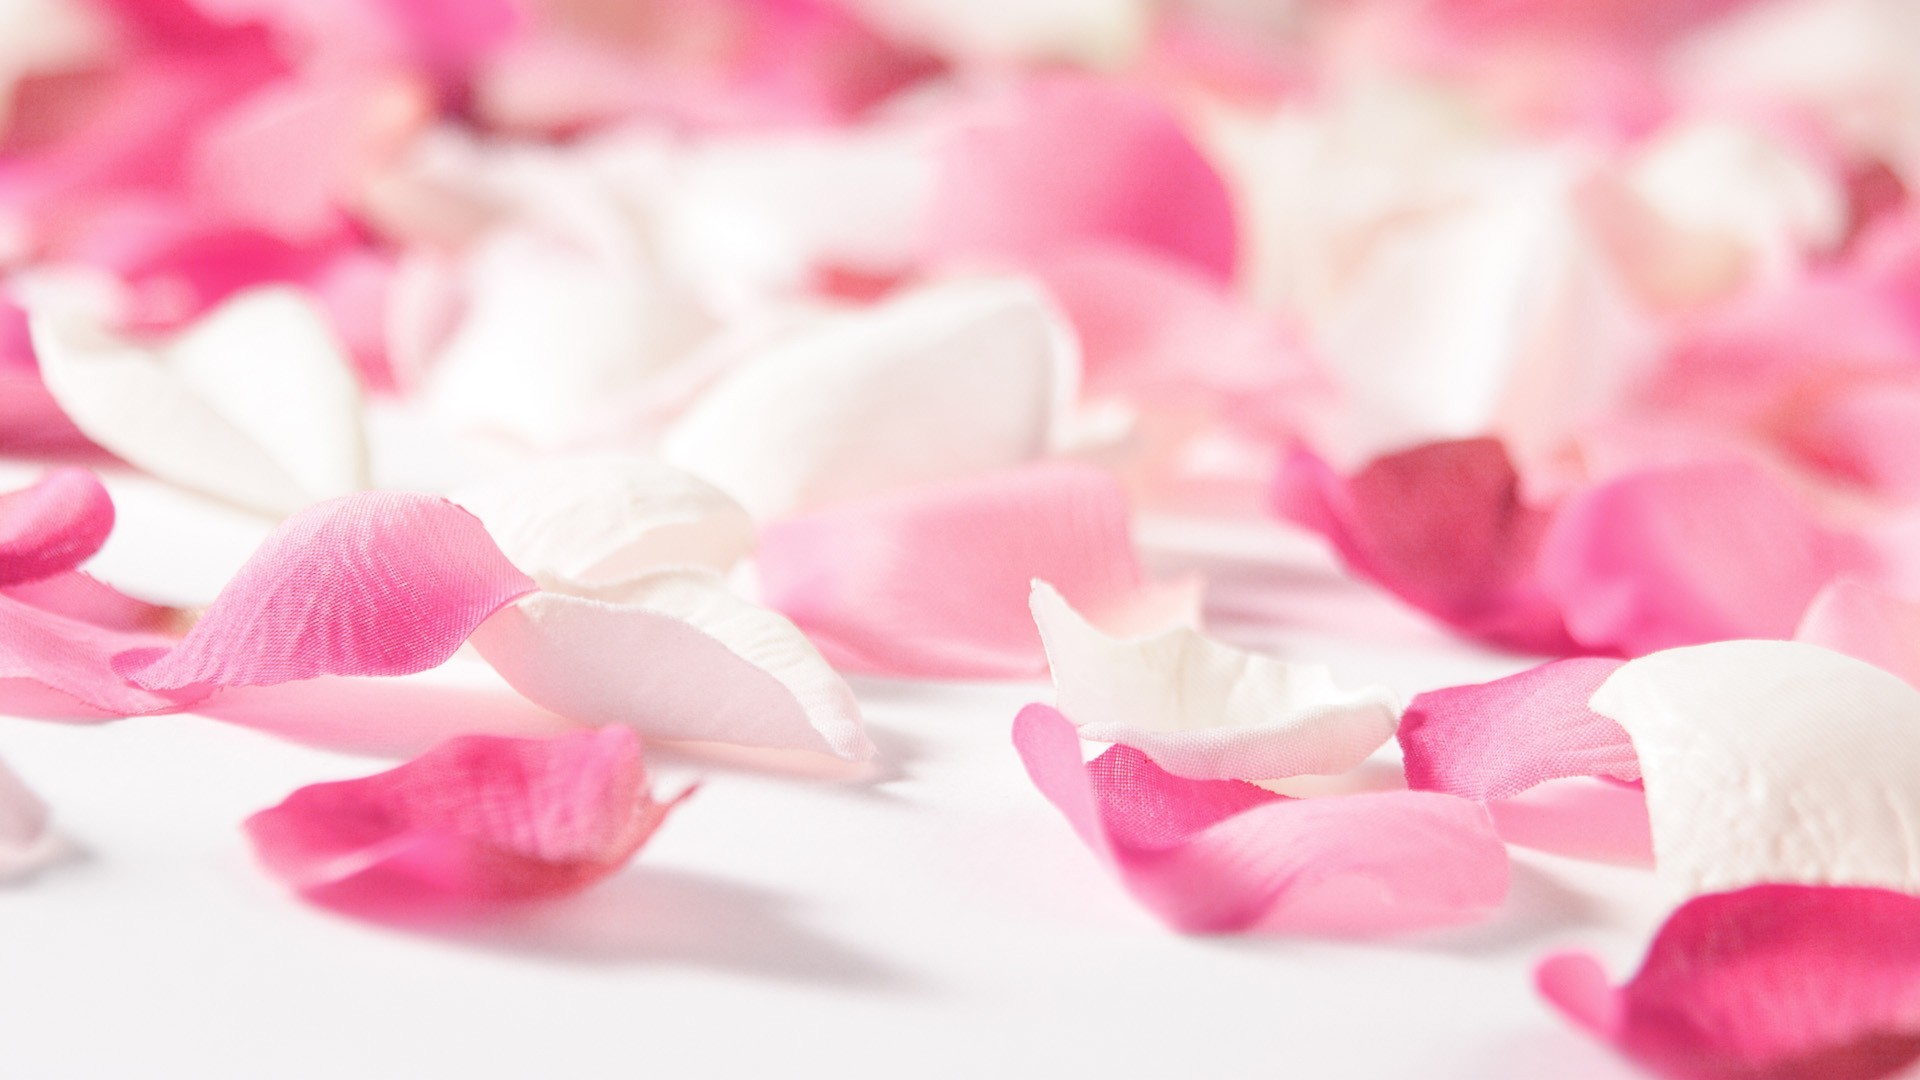 Pink flowers wallpapers hd wallpaper mightylinksfo